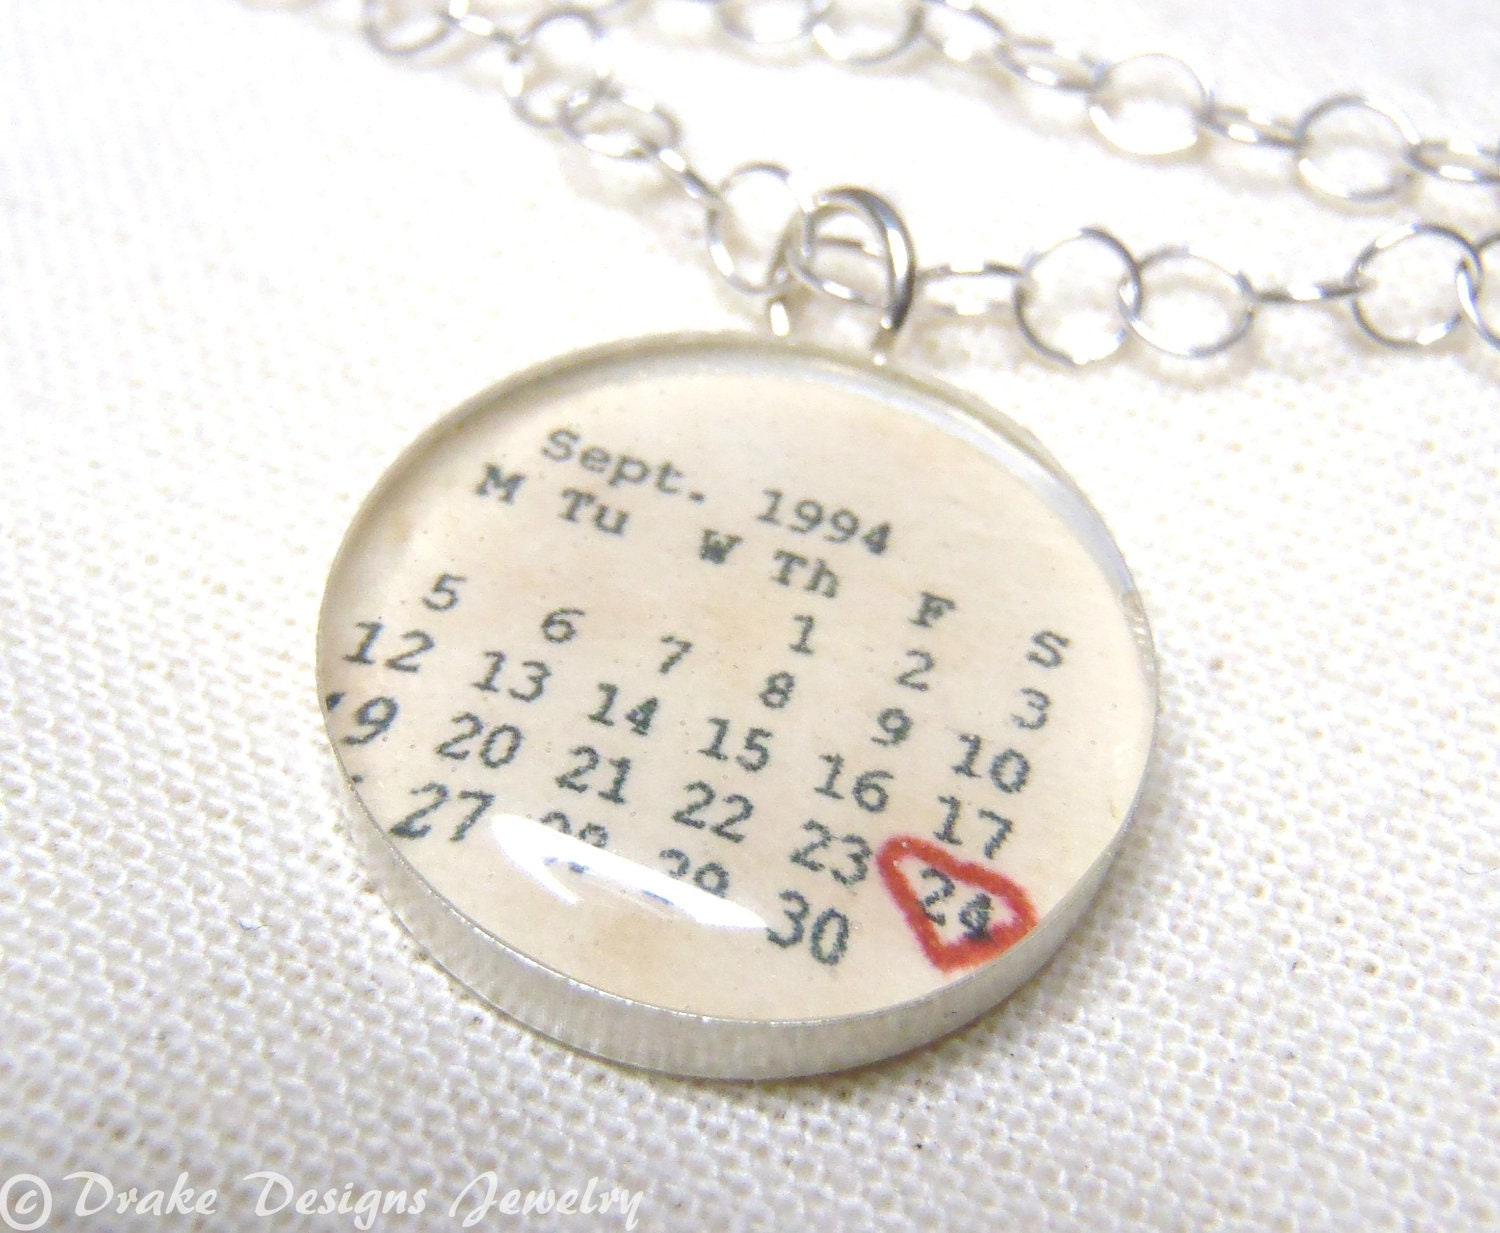 1st Wedding Anniversary Gift: Personalized Calendar Necklace ...First Anniversary Paper